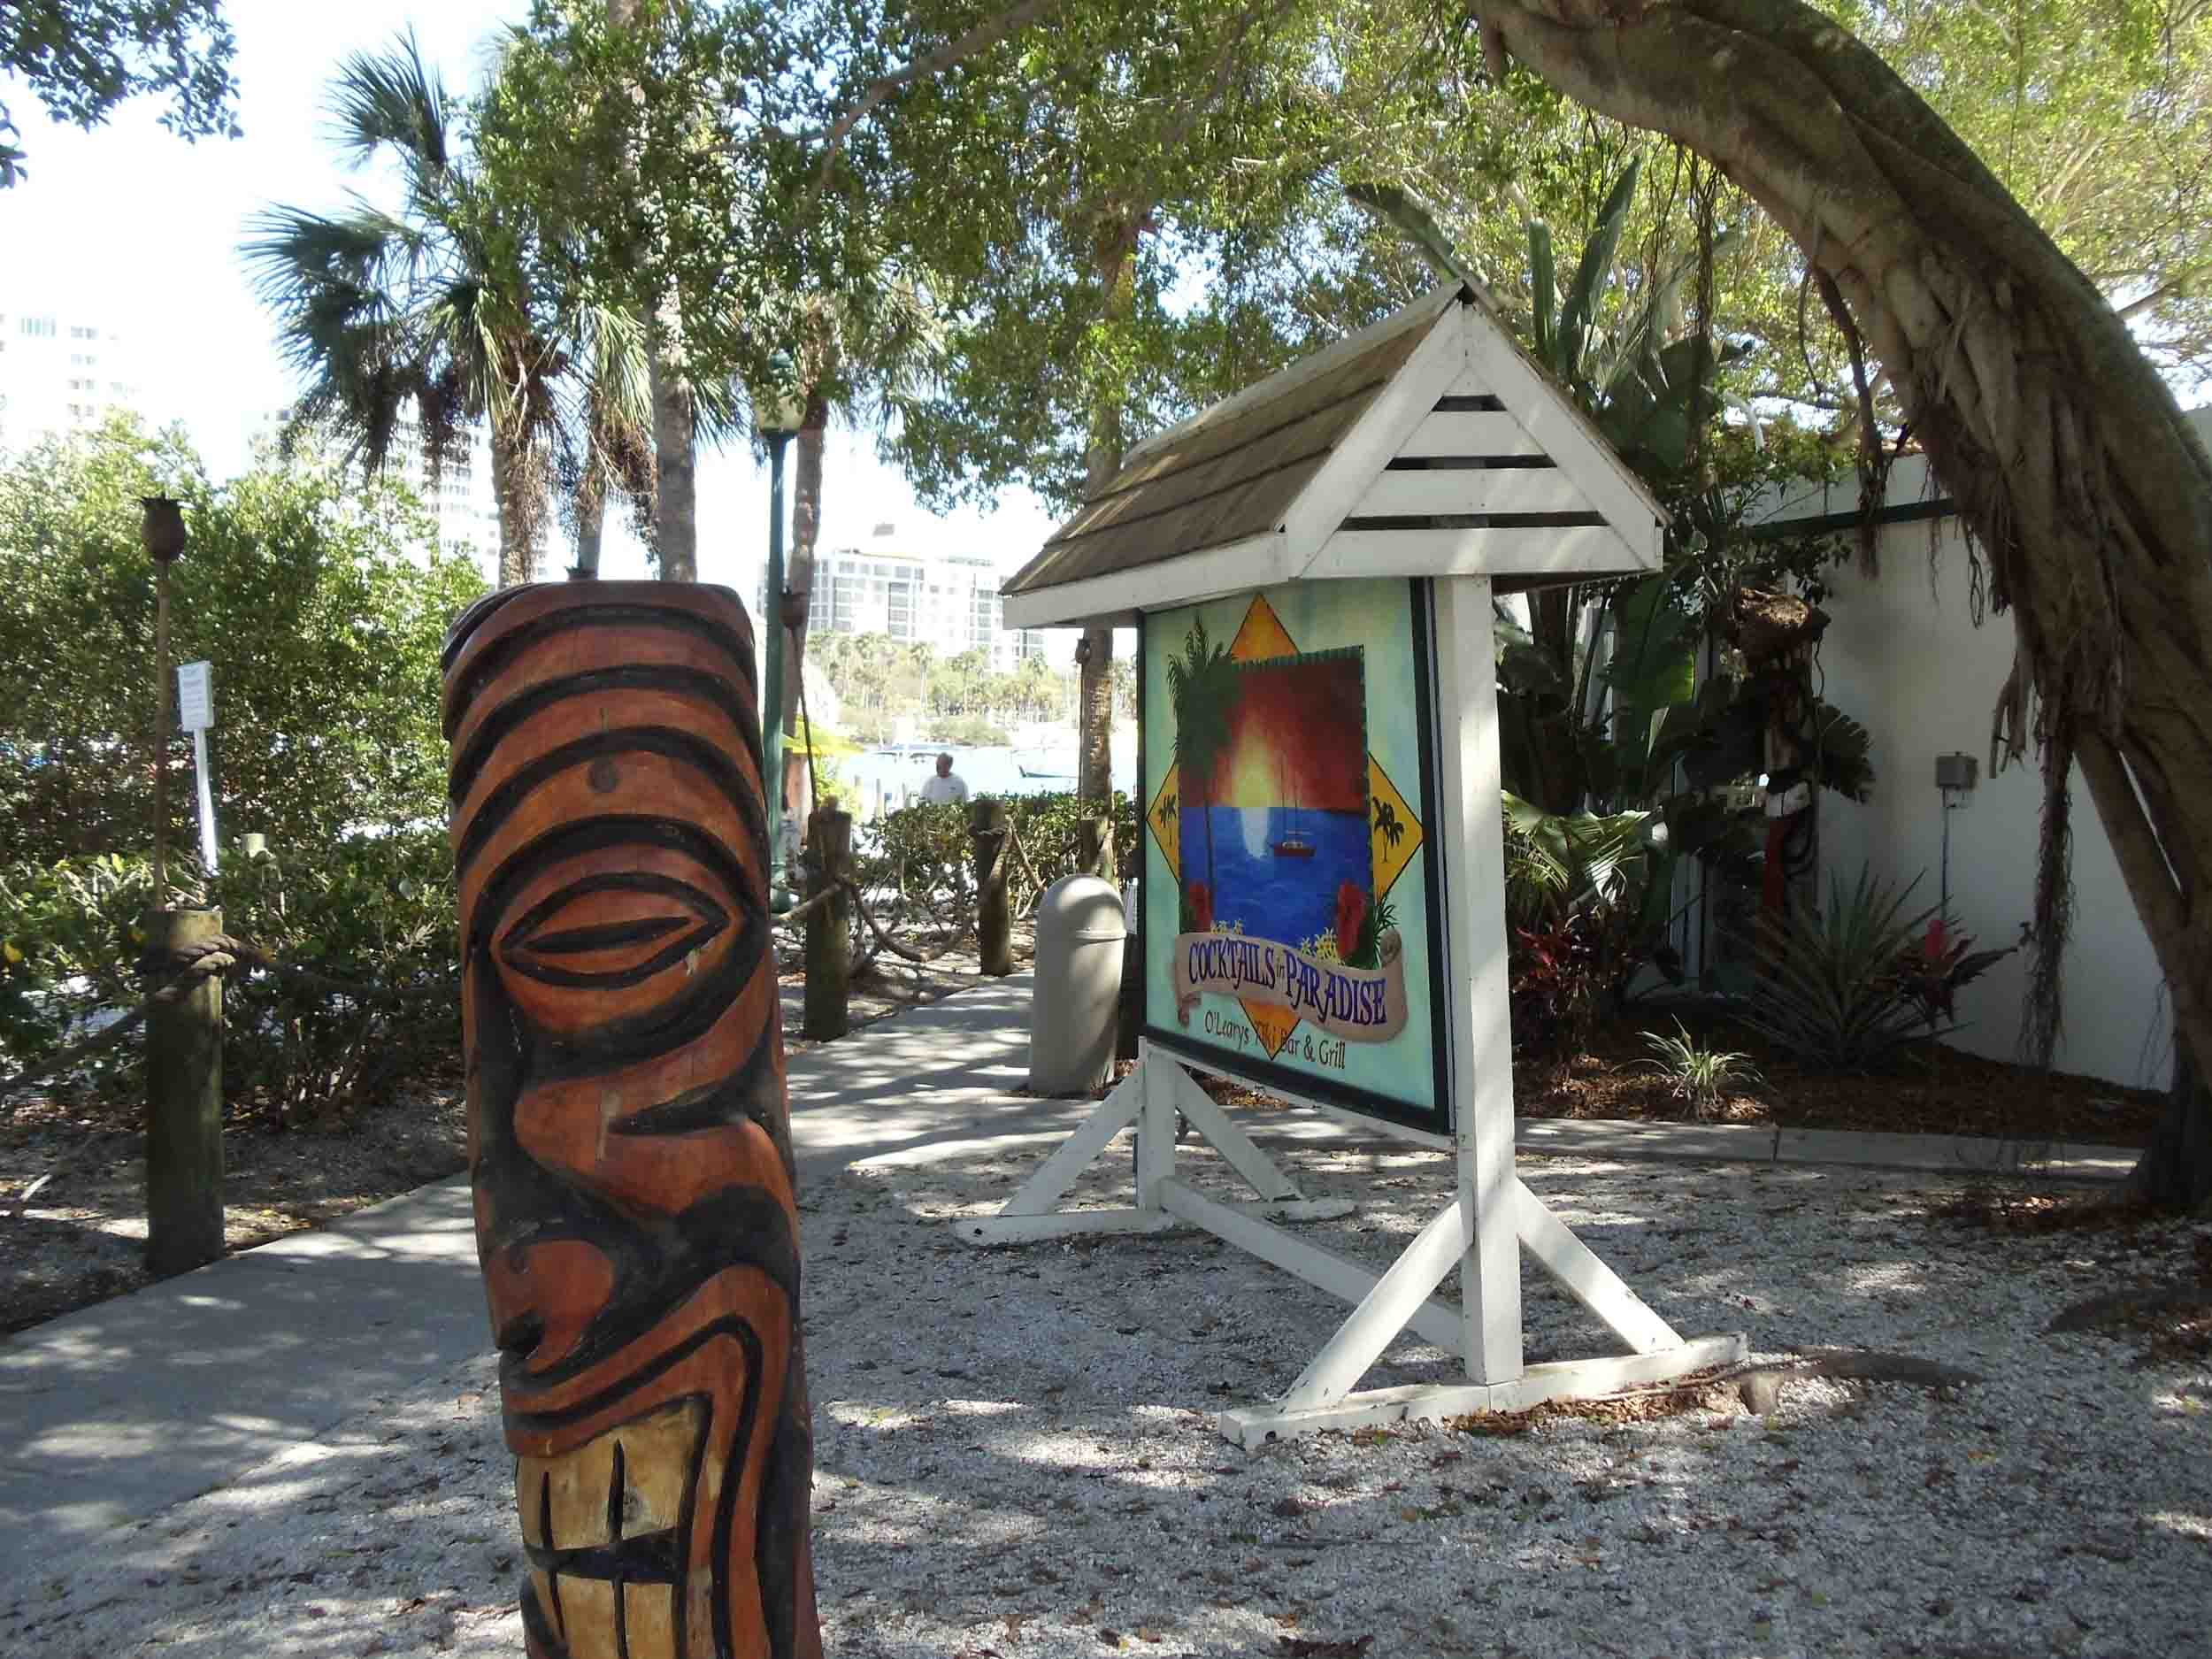 Oleary's Tiki Bar and Grill Entrance